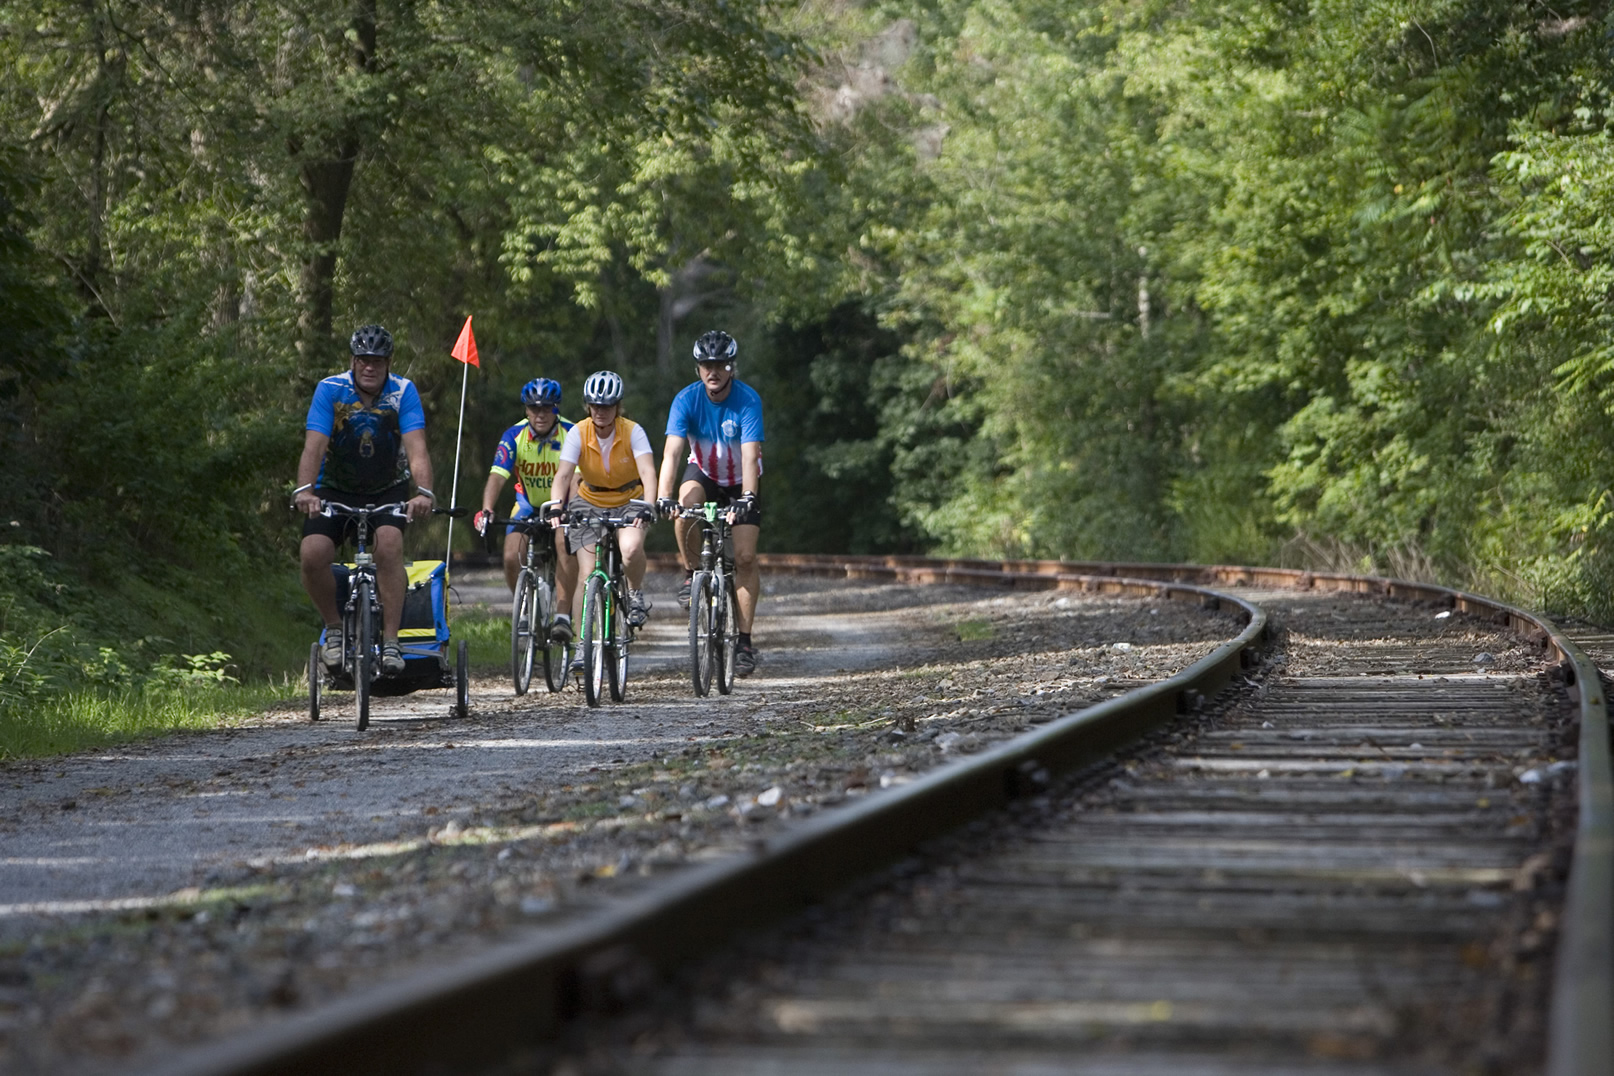 Cyclists enjoy a ride along the York County Heritage Rail Trail. Photo courtesy of the York County Convention & Visitors Bureau.